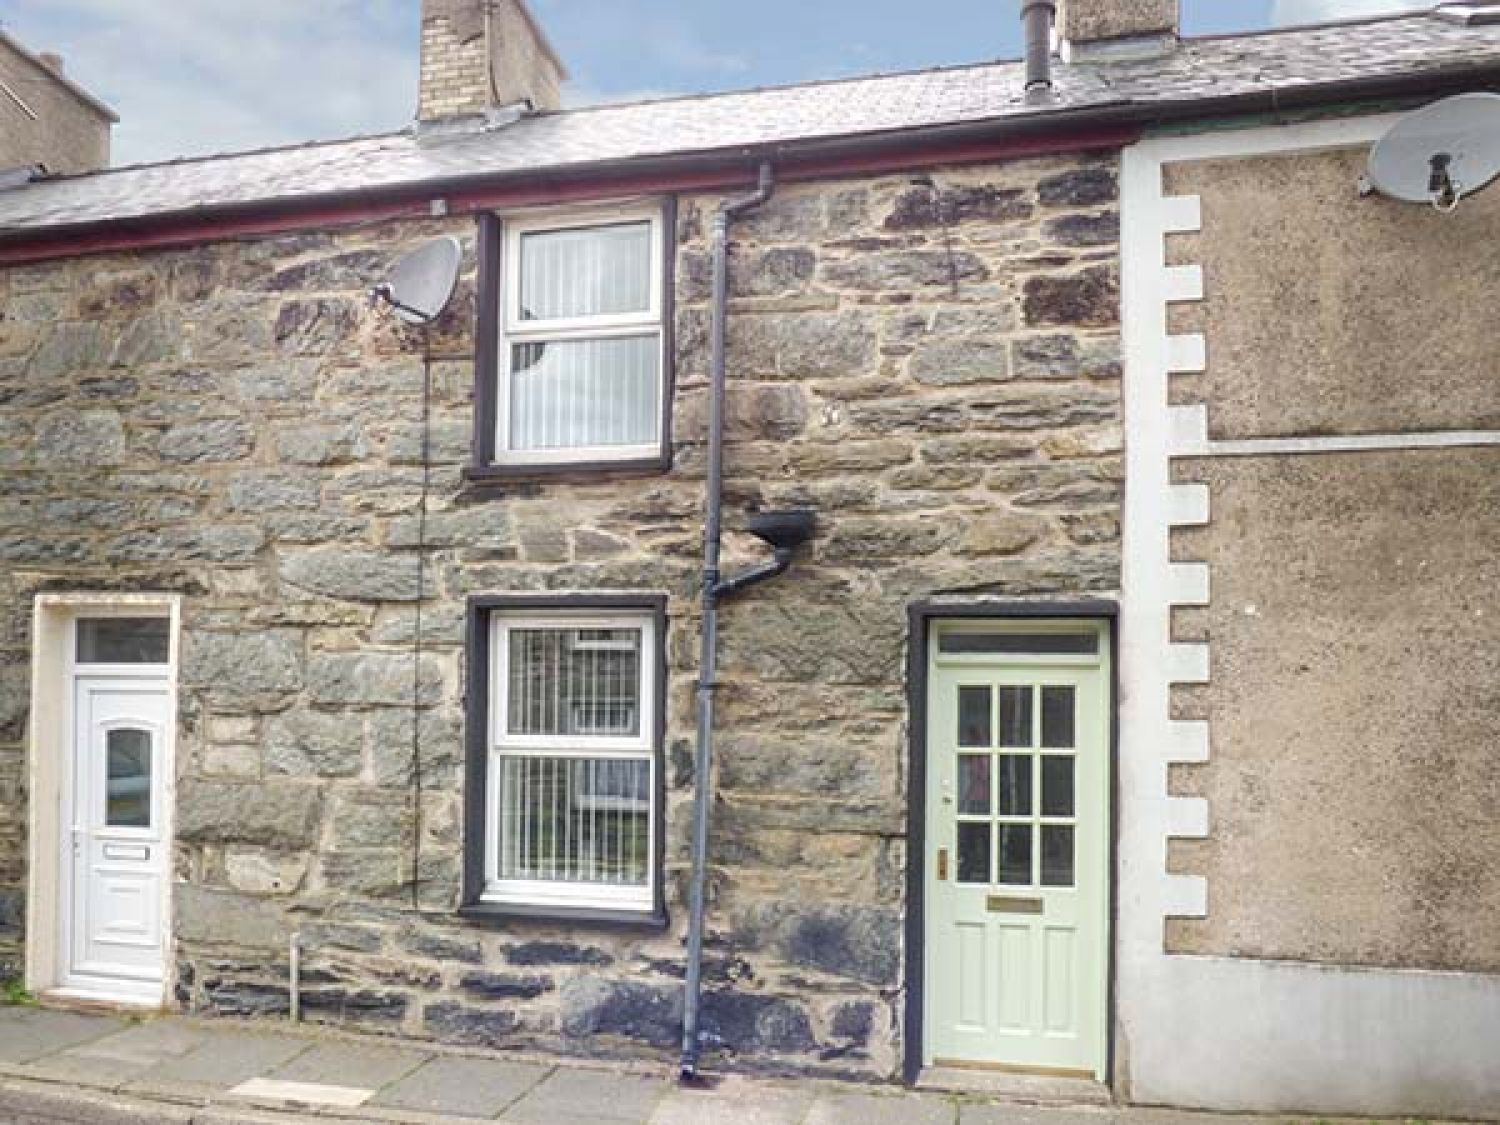 20 Glynllifon Street - North Wales - 938029 - photo 1